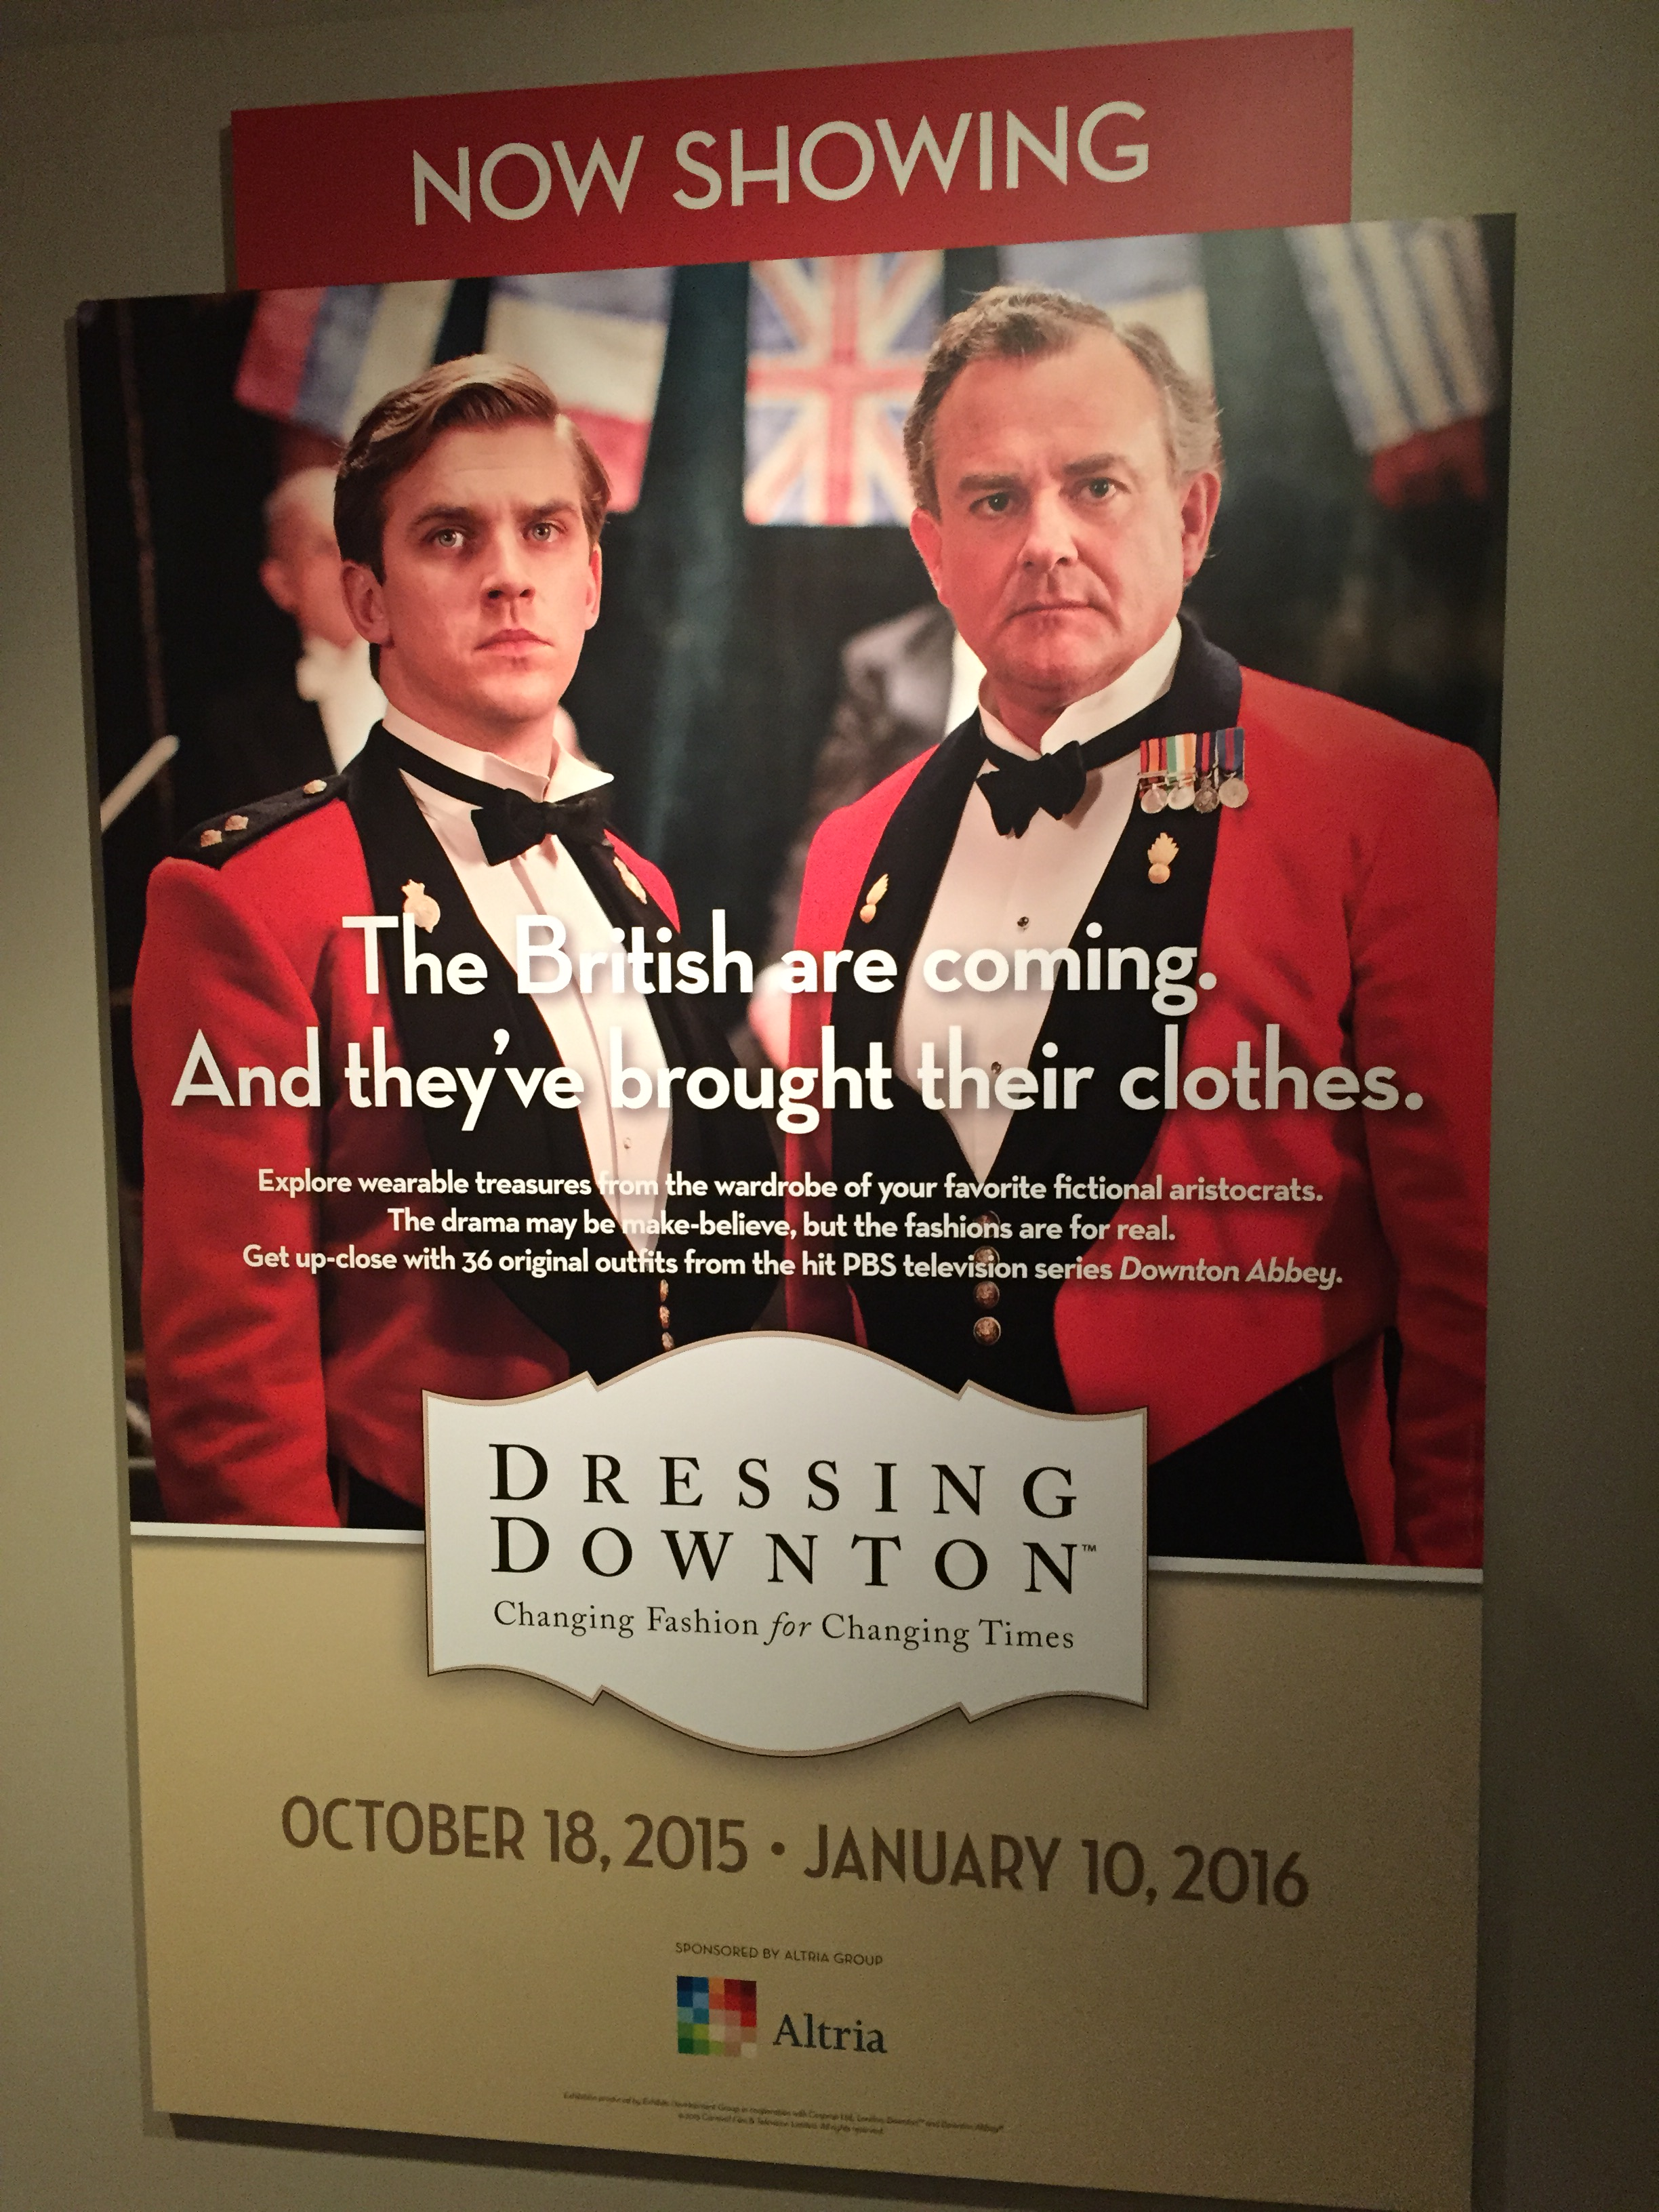 """Dressing Downton"" is presently showing in Richmond, VA. Future exhibits are scheduled for Cincinnati, OH; Anaheim, CA; St. Augustine, FL; Oshkosh, WI; Chicago, IL; South Bend, IN; and ending in Nashville, TN in 2017."